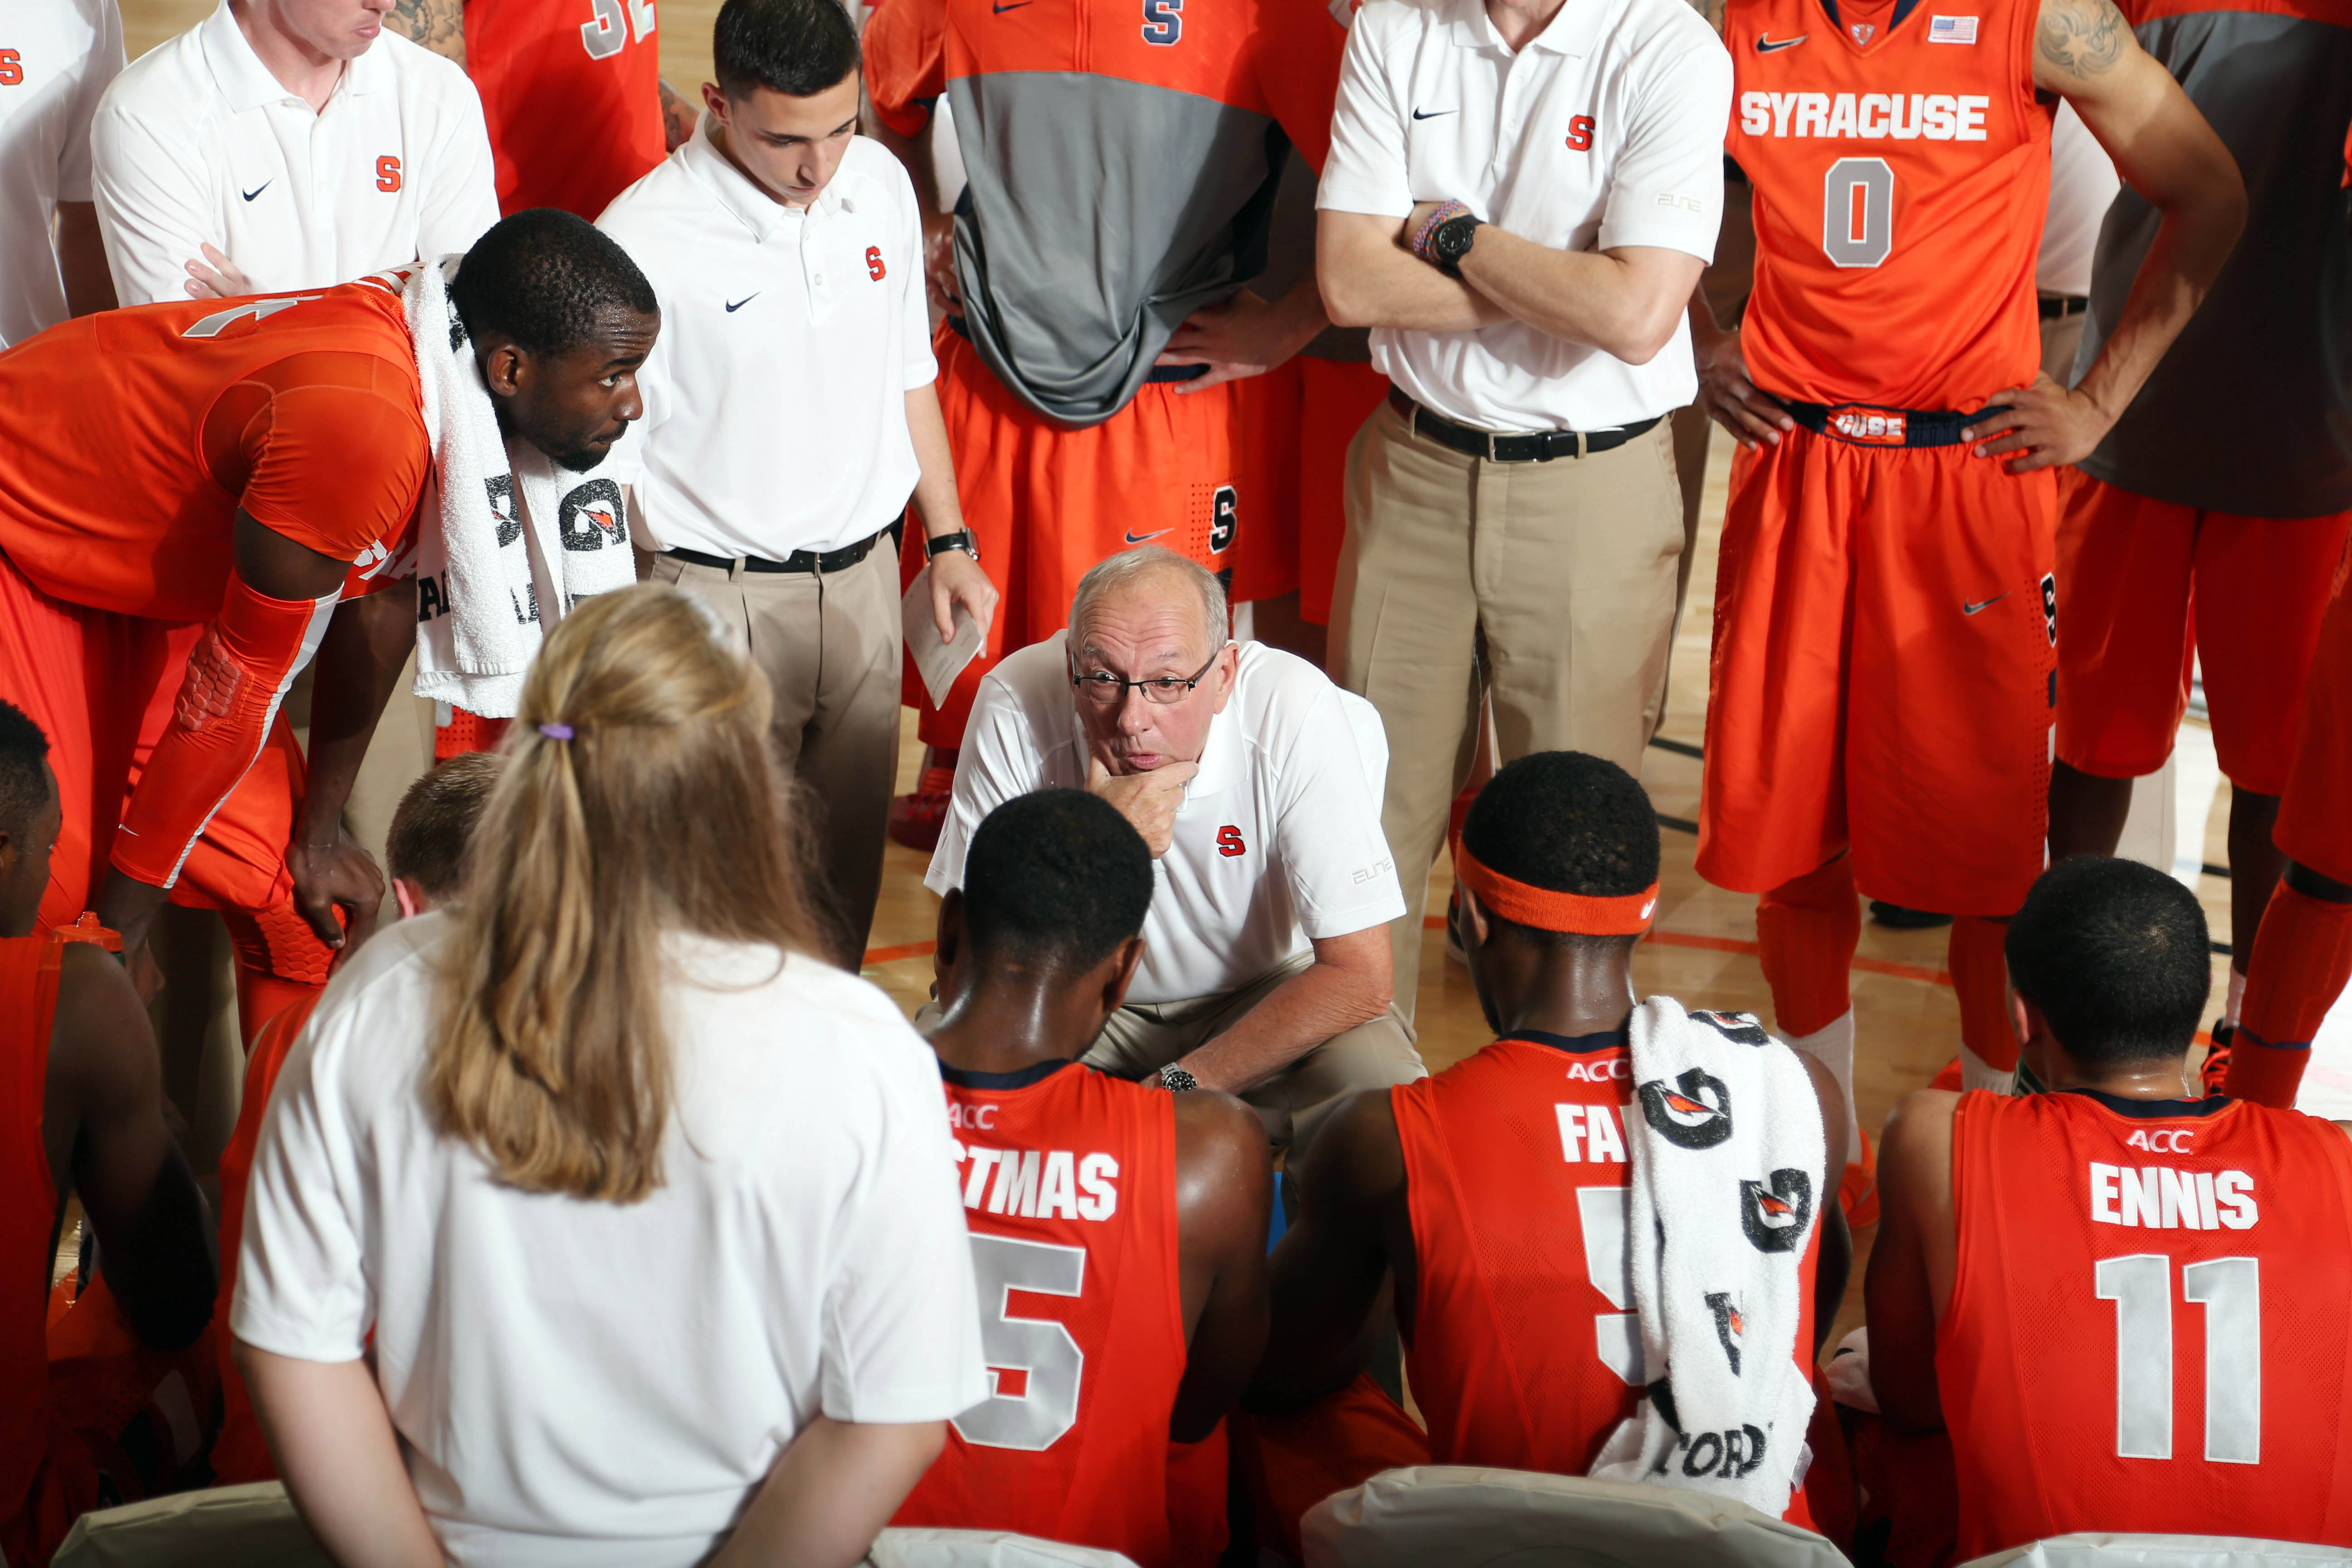 Syracuse, one of three teams new to the Challenge, helps headline the Tuesday games.